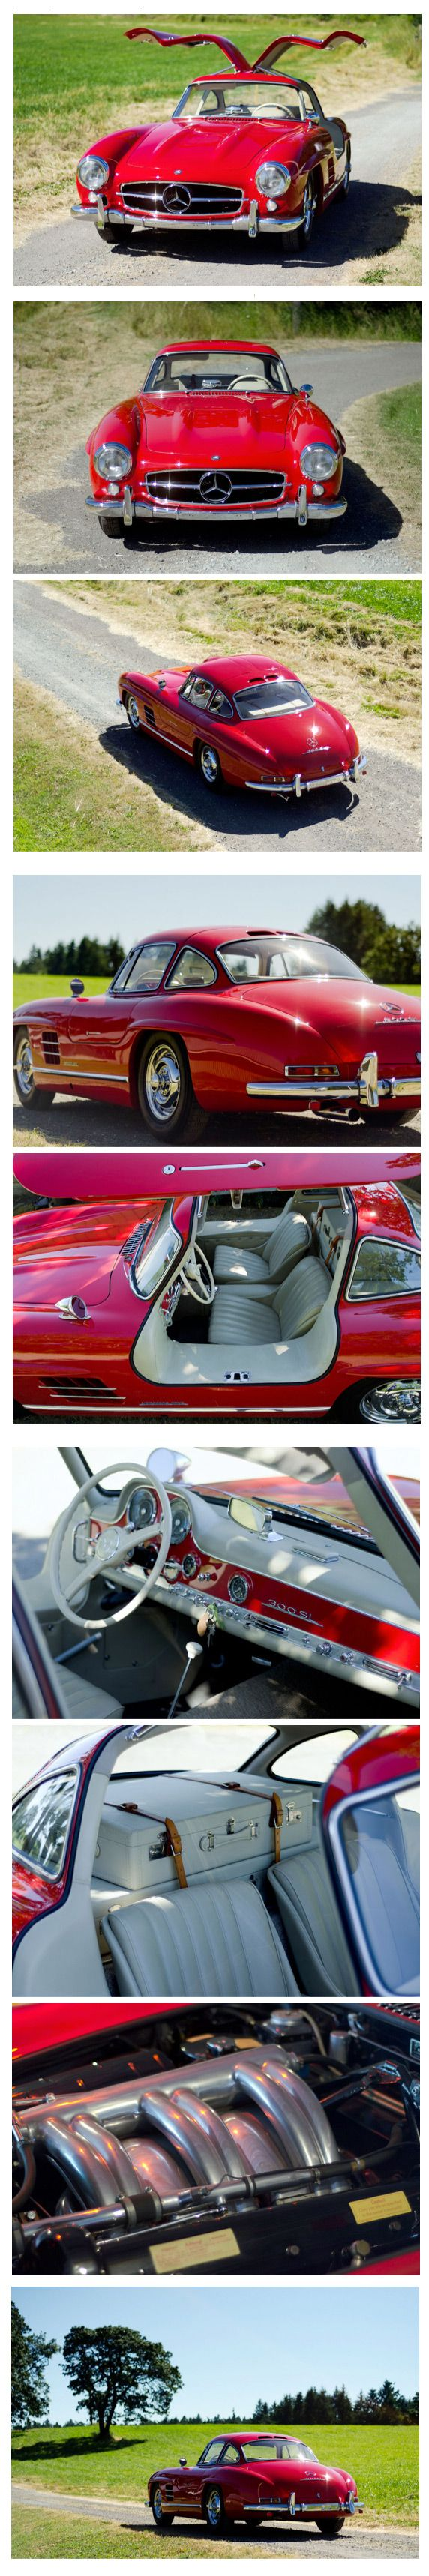 1955 Mercedes-Benz 300SL Gullwing...Re-pin...Brought to you by #HouseofInsurance for #CarInsurance #EugeneOregon